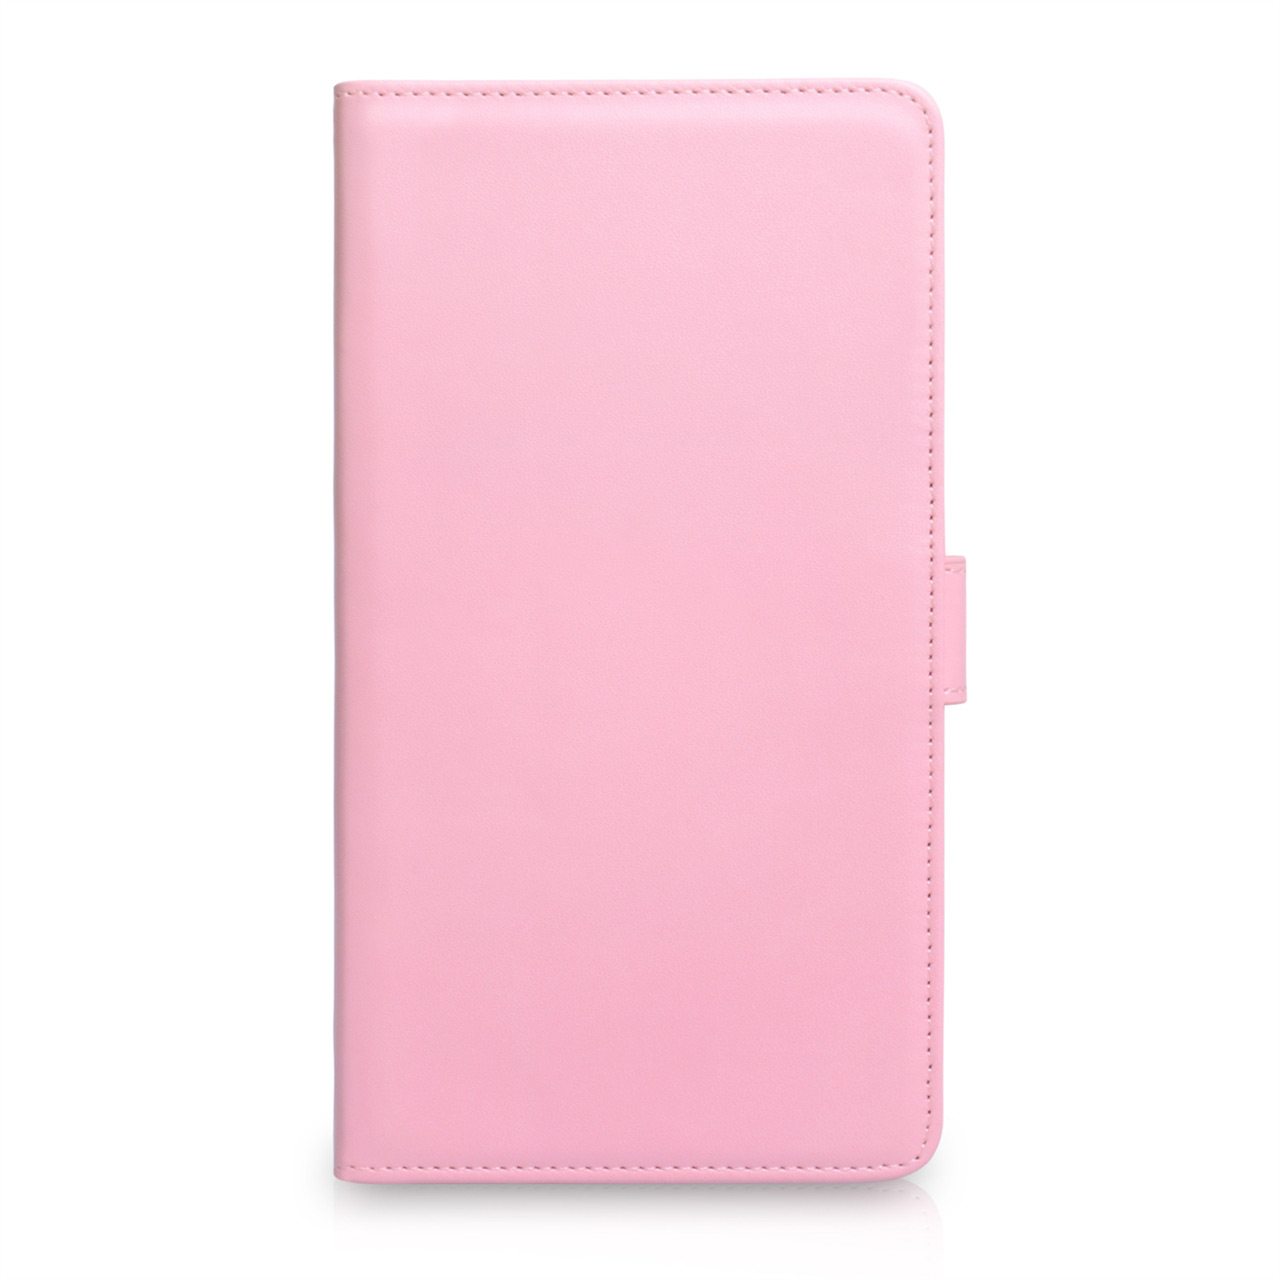 YouSave Sony Xperia Z Ultra Leather Effect Wallet - Baby Pink